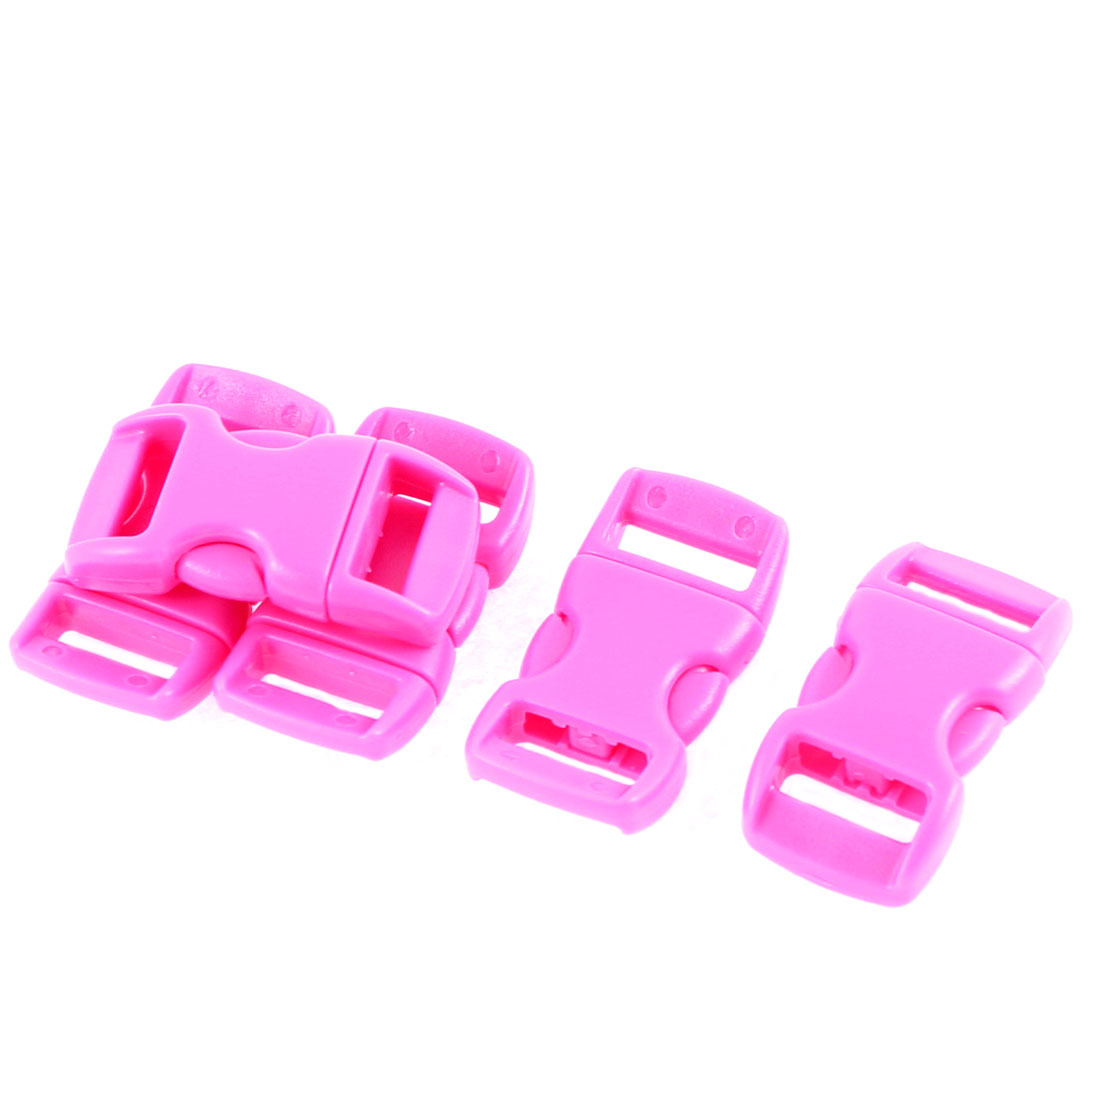 Luggage Backpack Plastic Side Quick Release Buckle 11mm Strap Fuchsia 5pcs